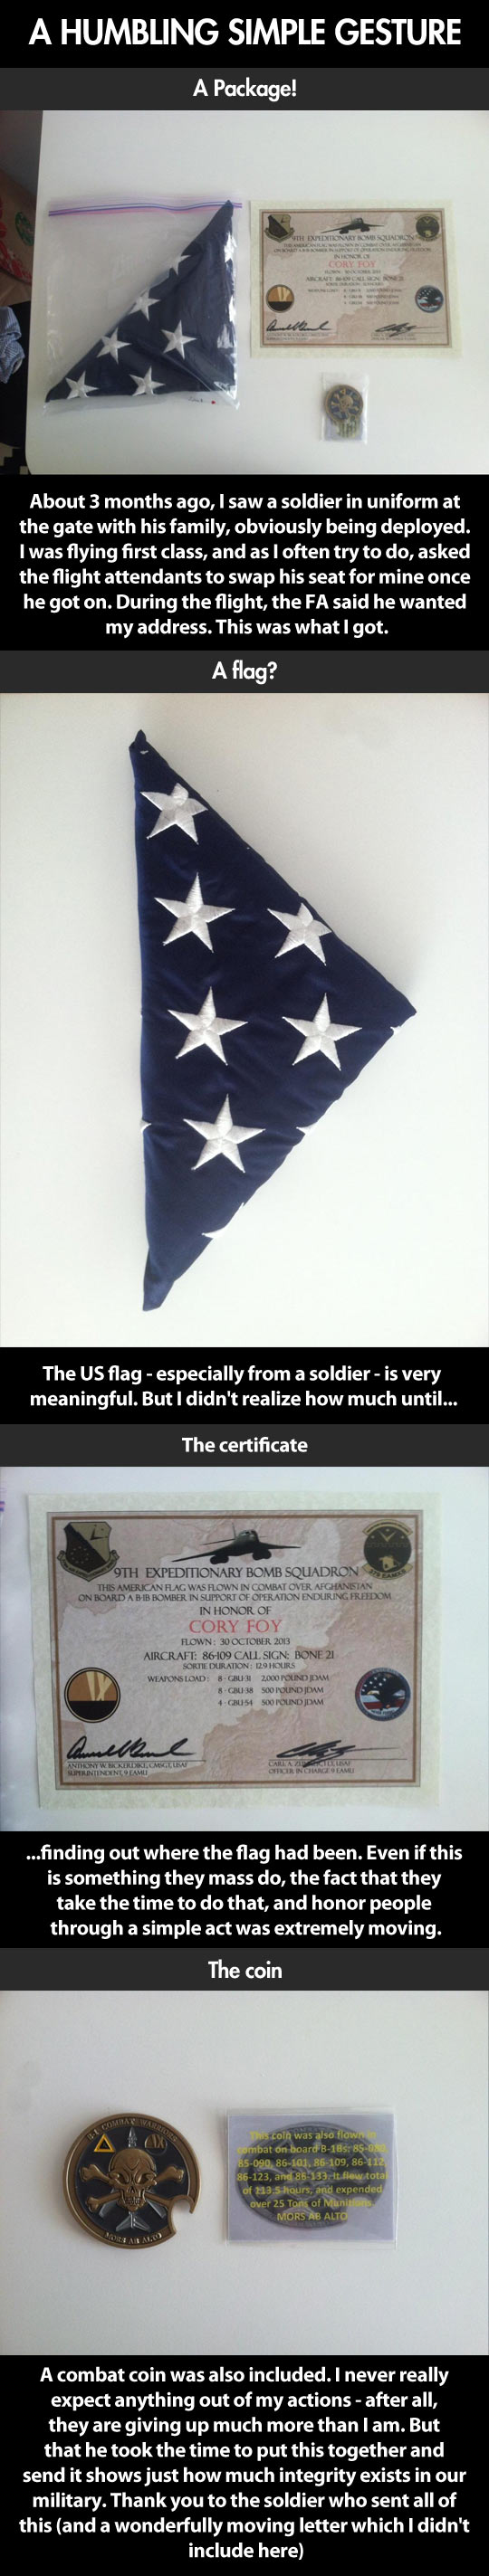 cool-soldier-flag-coin-package-certificate-fly